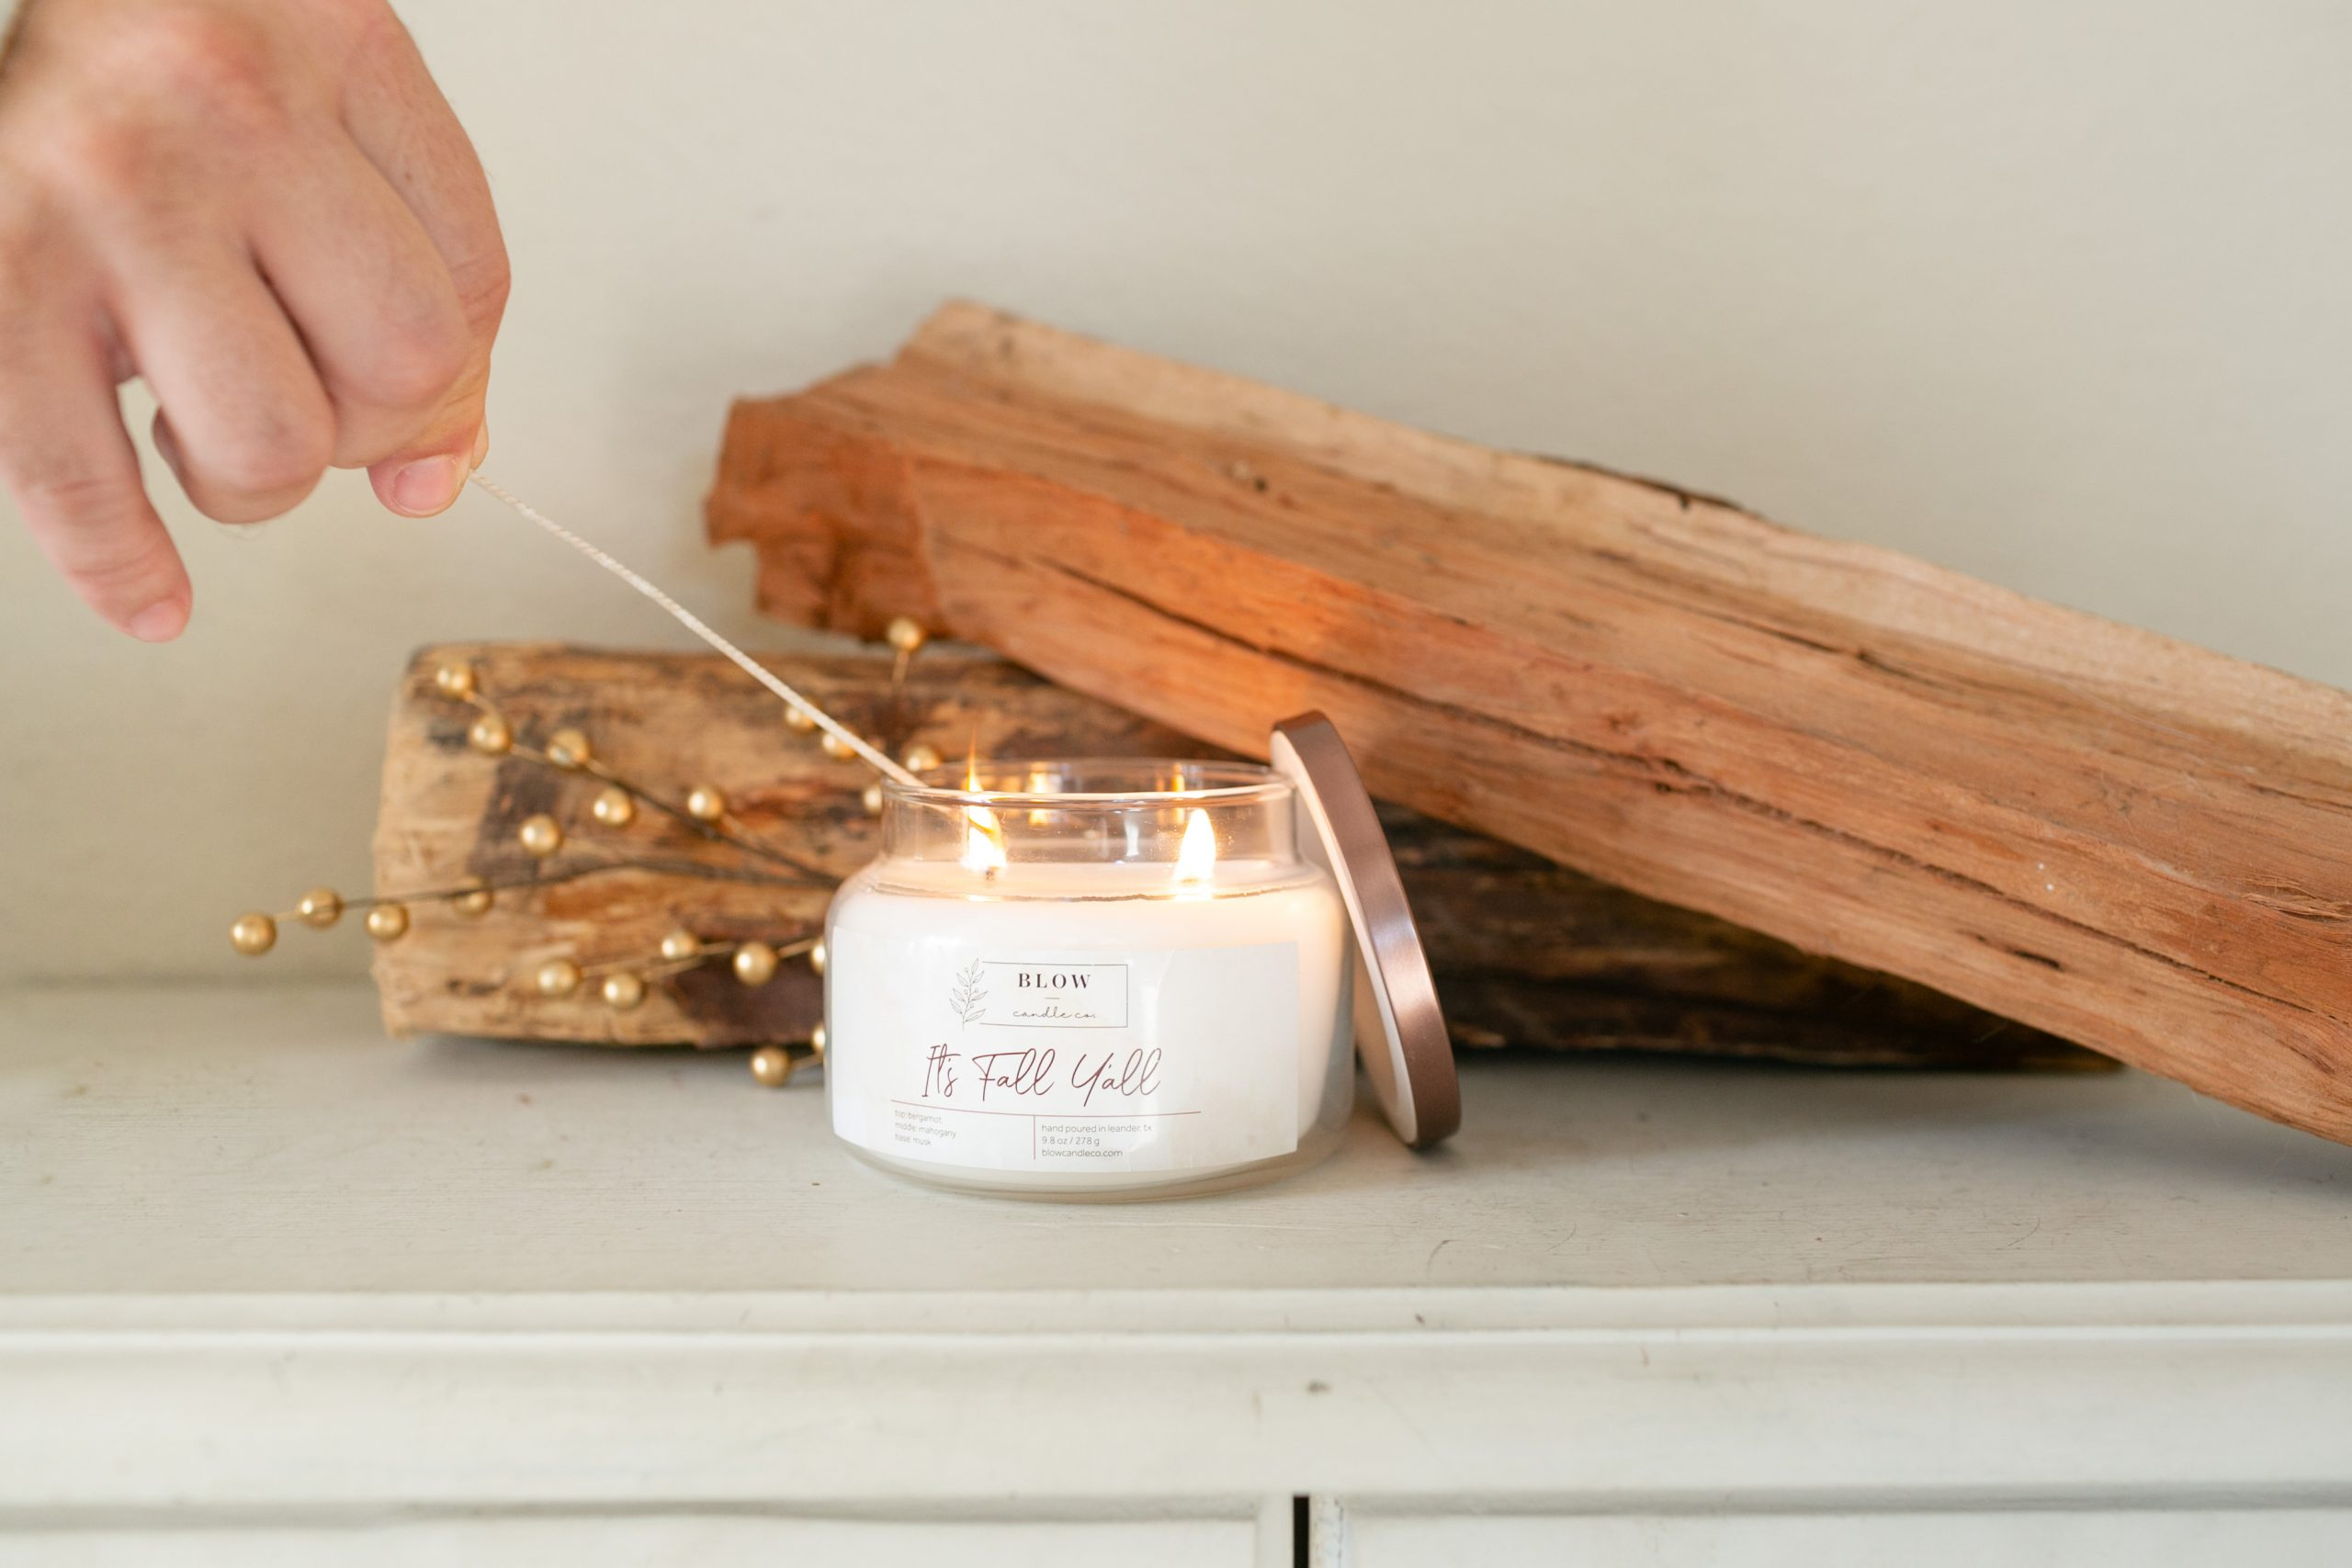 Blow Candle Co product image by Paty Araujo Photography